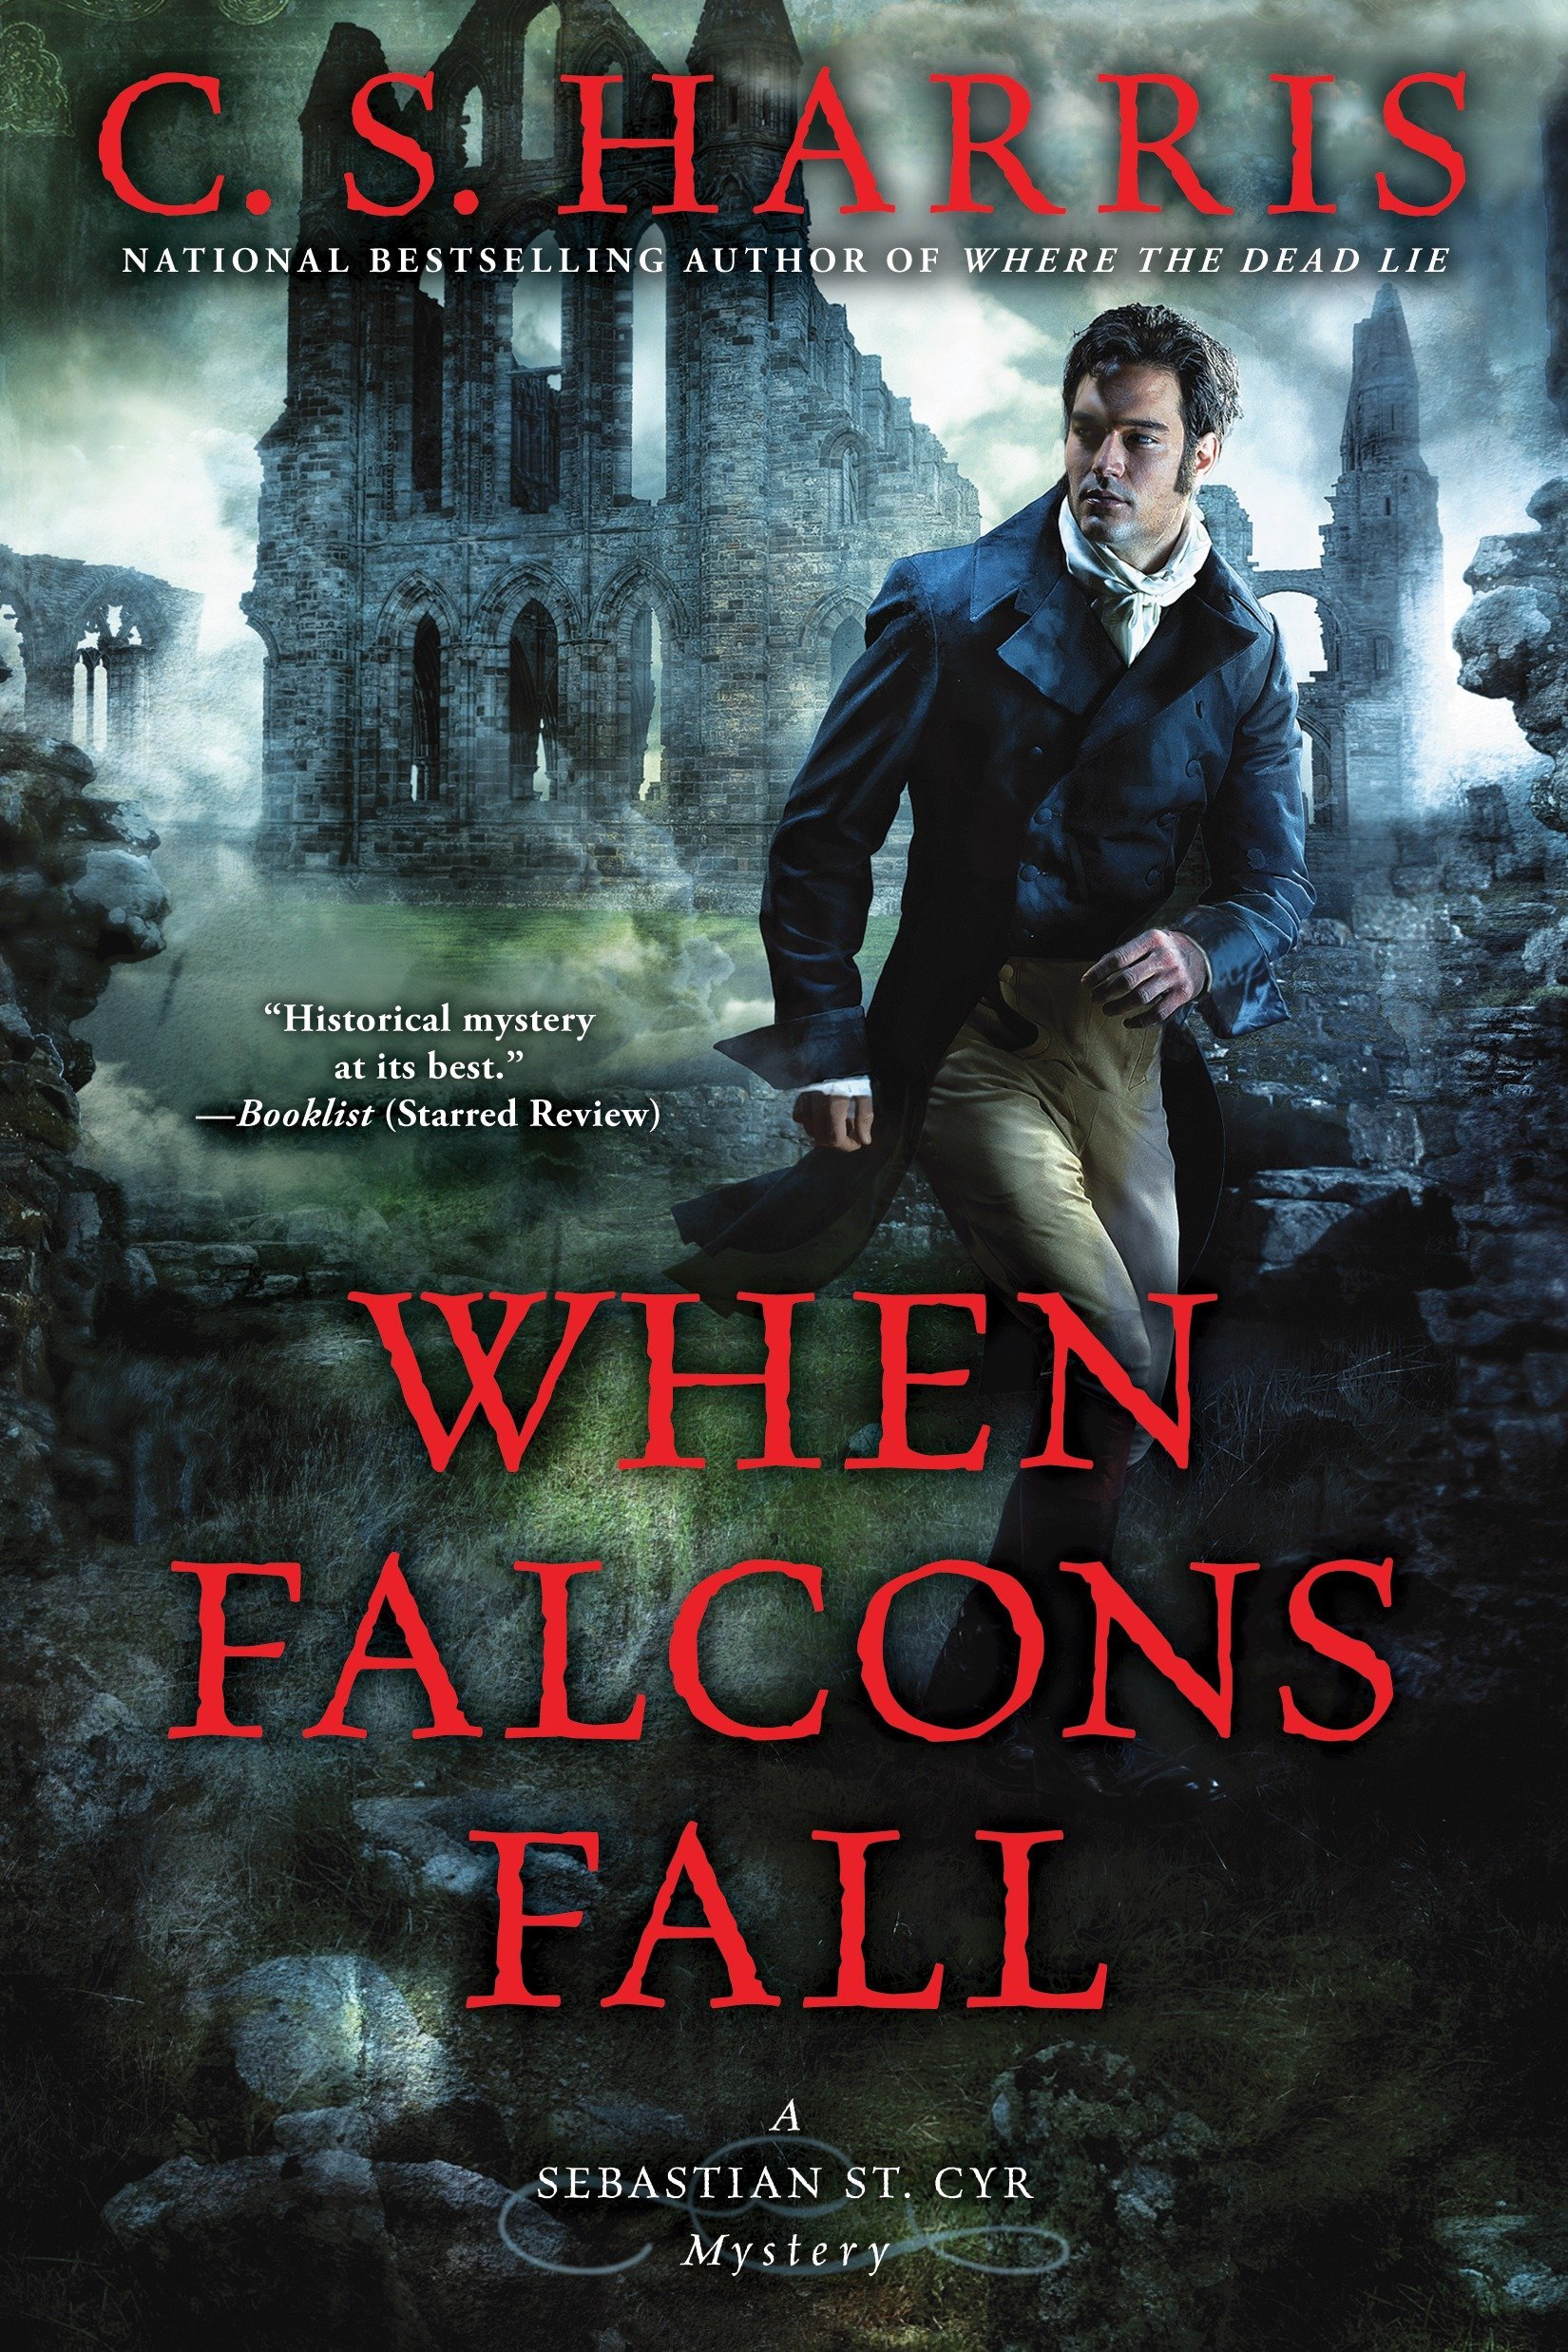 When Falcons Fall (Sebastian St. Cyr Mystery, Band 11)